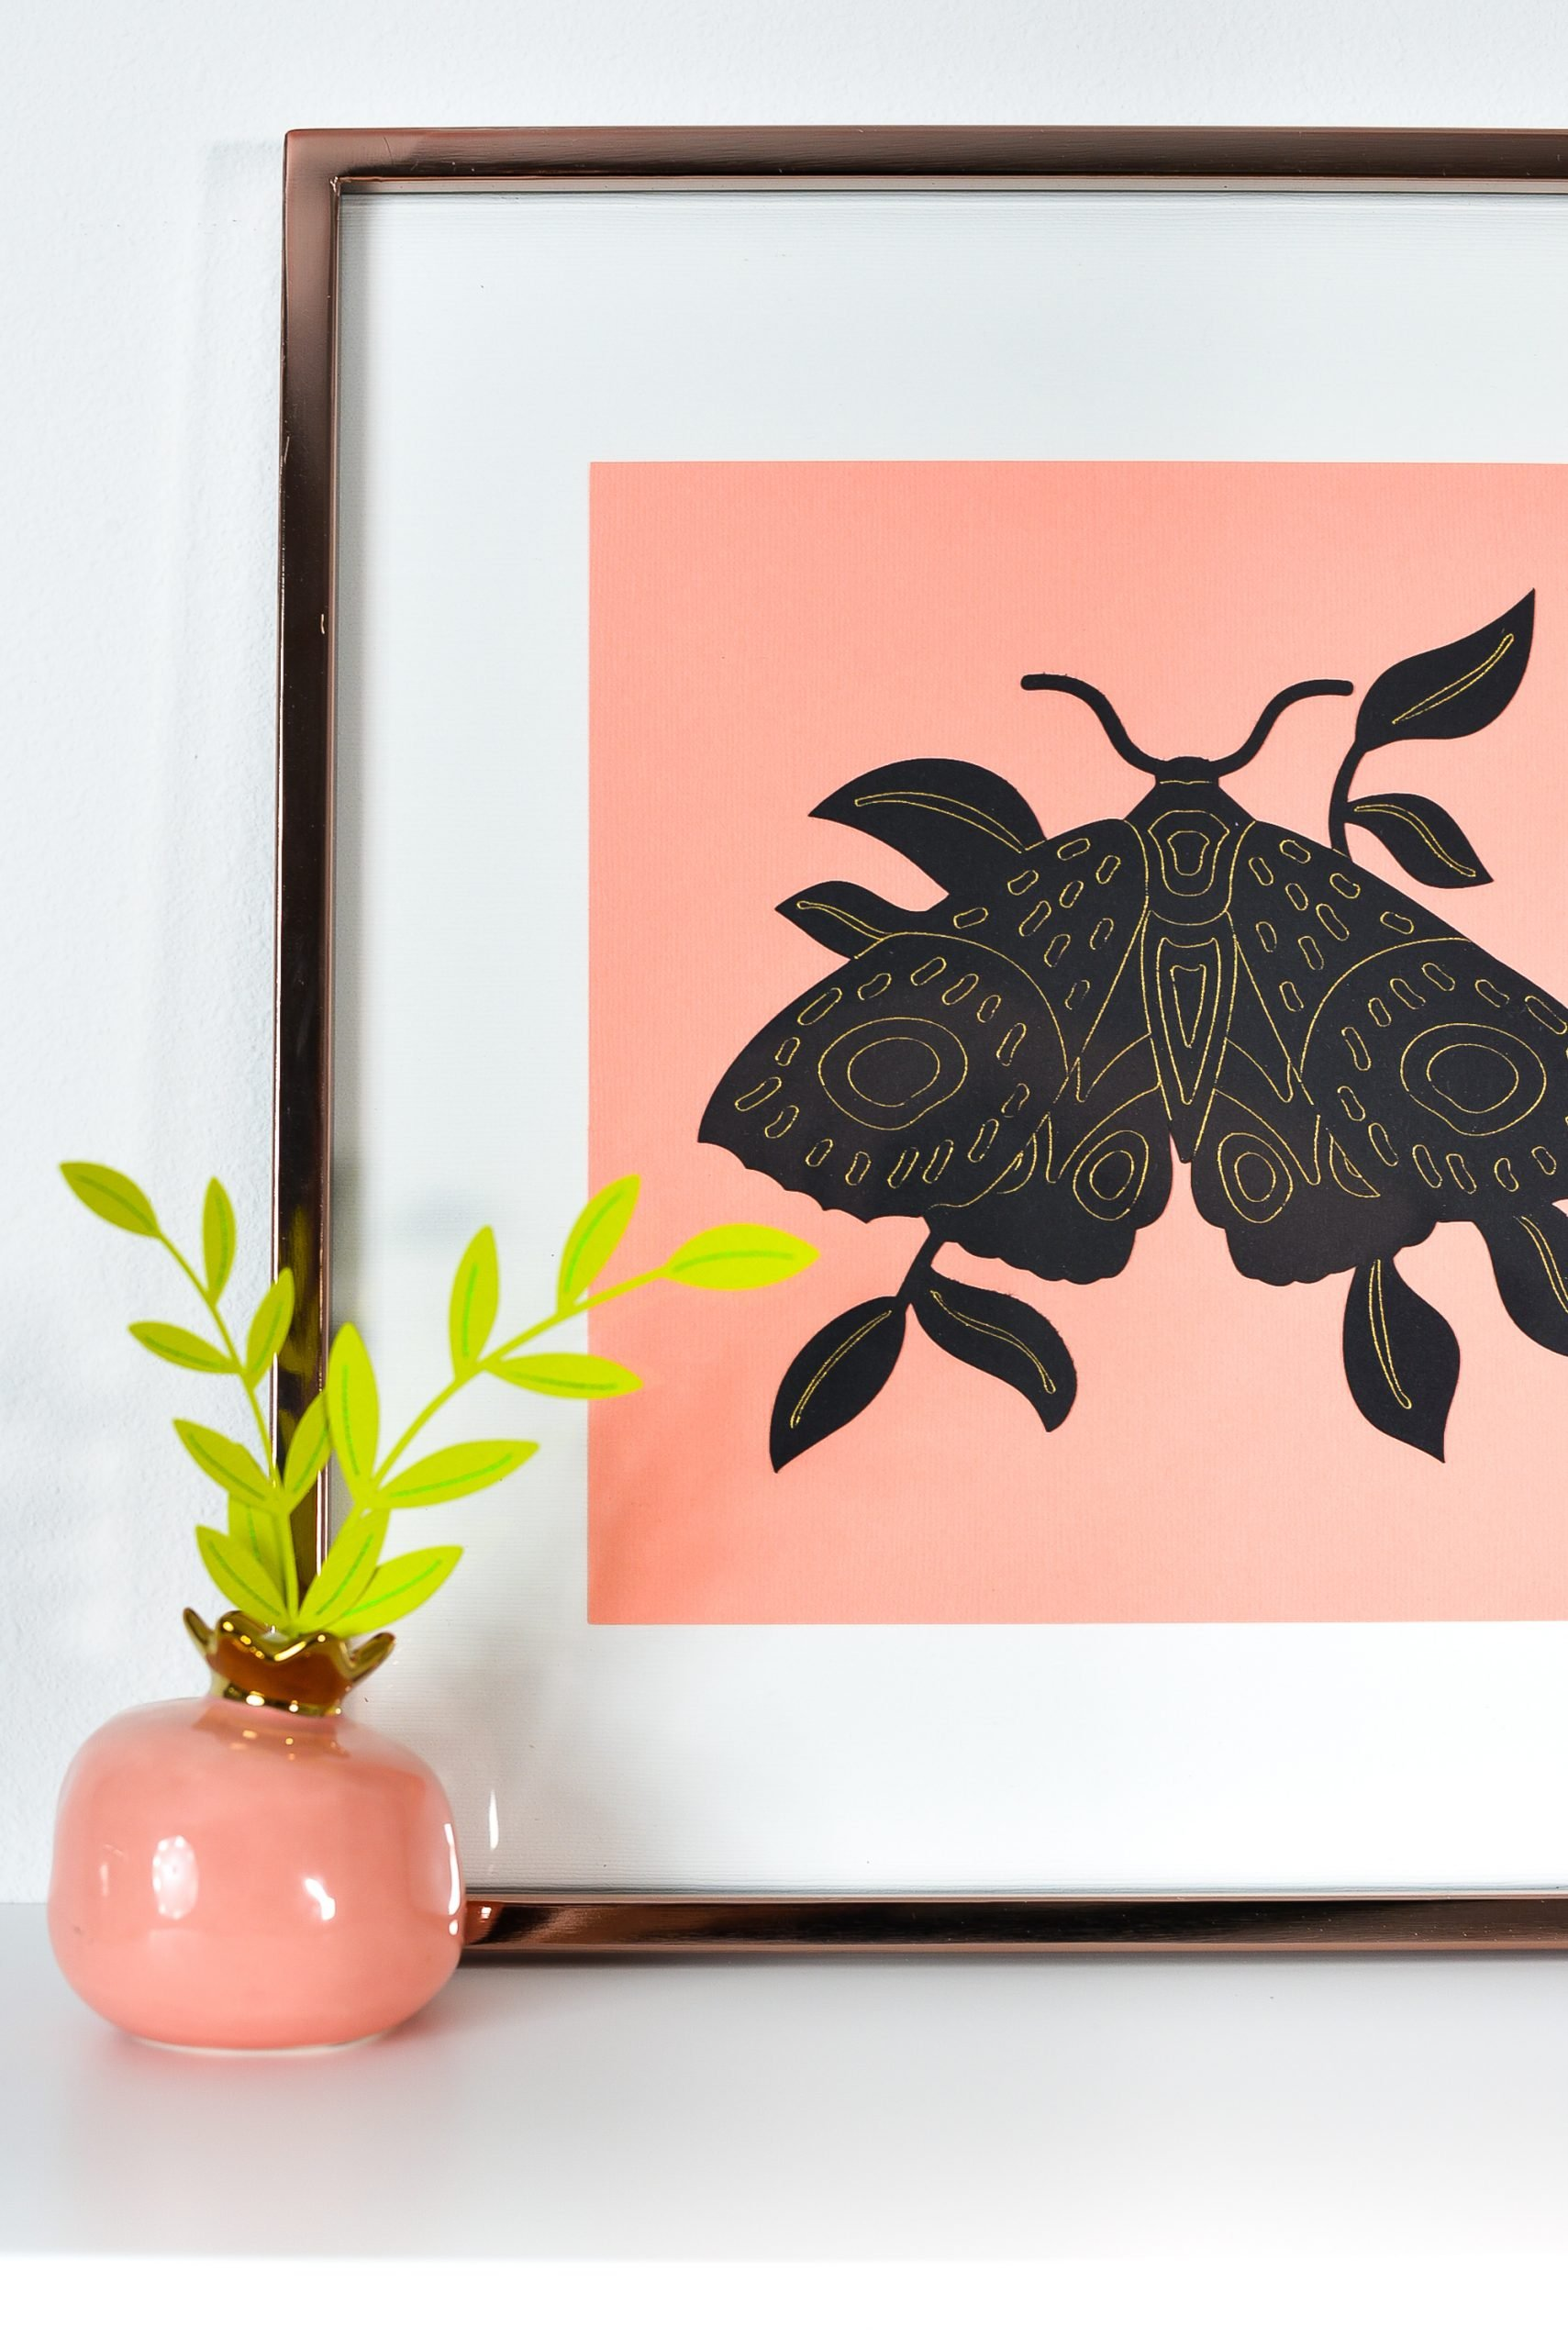 Moth artwork on shelf with small paper plant